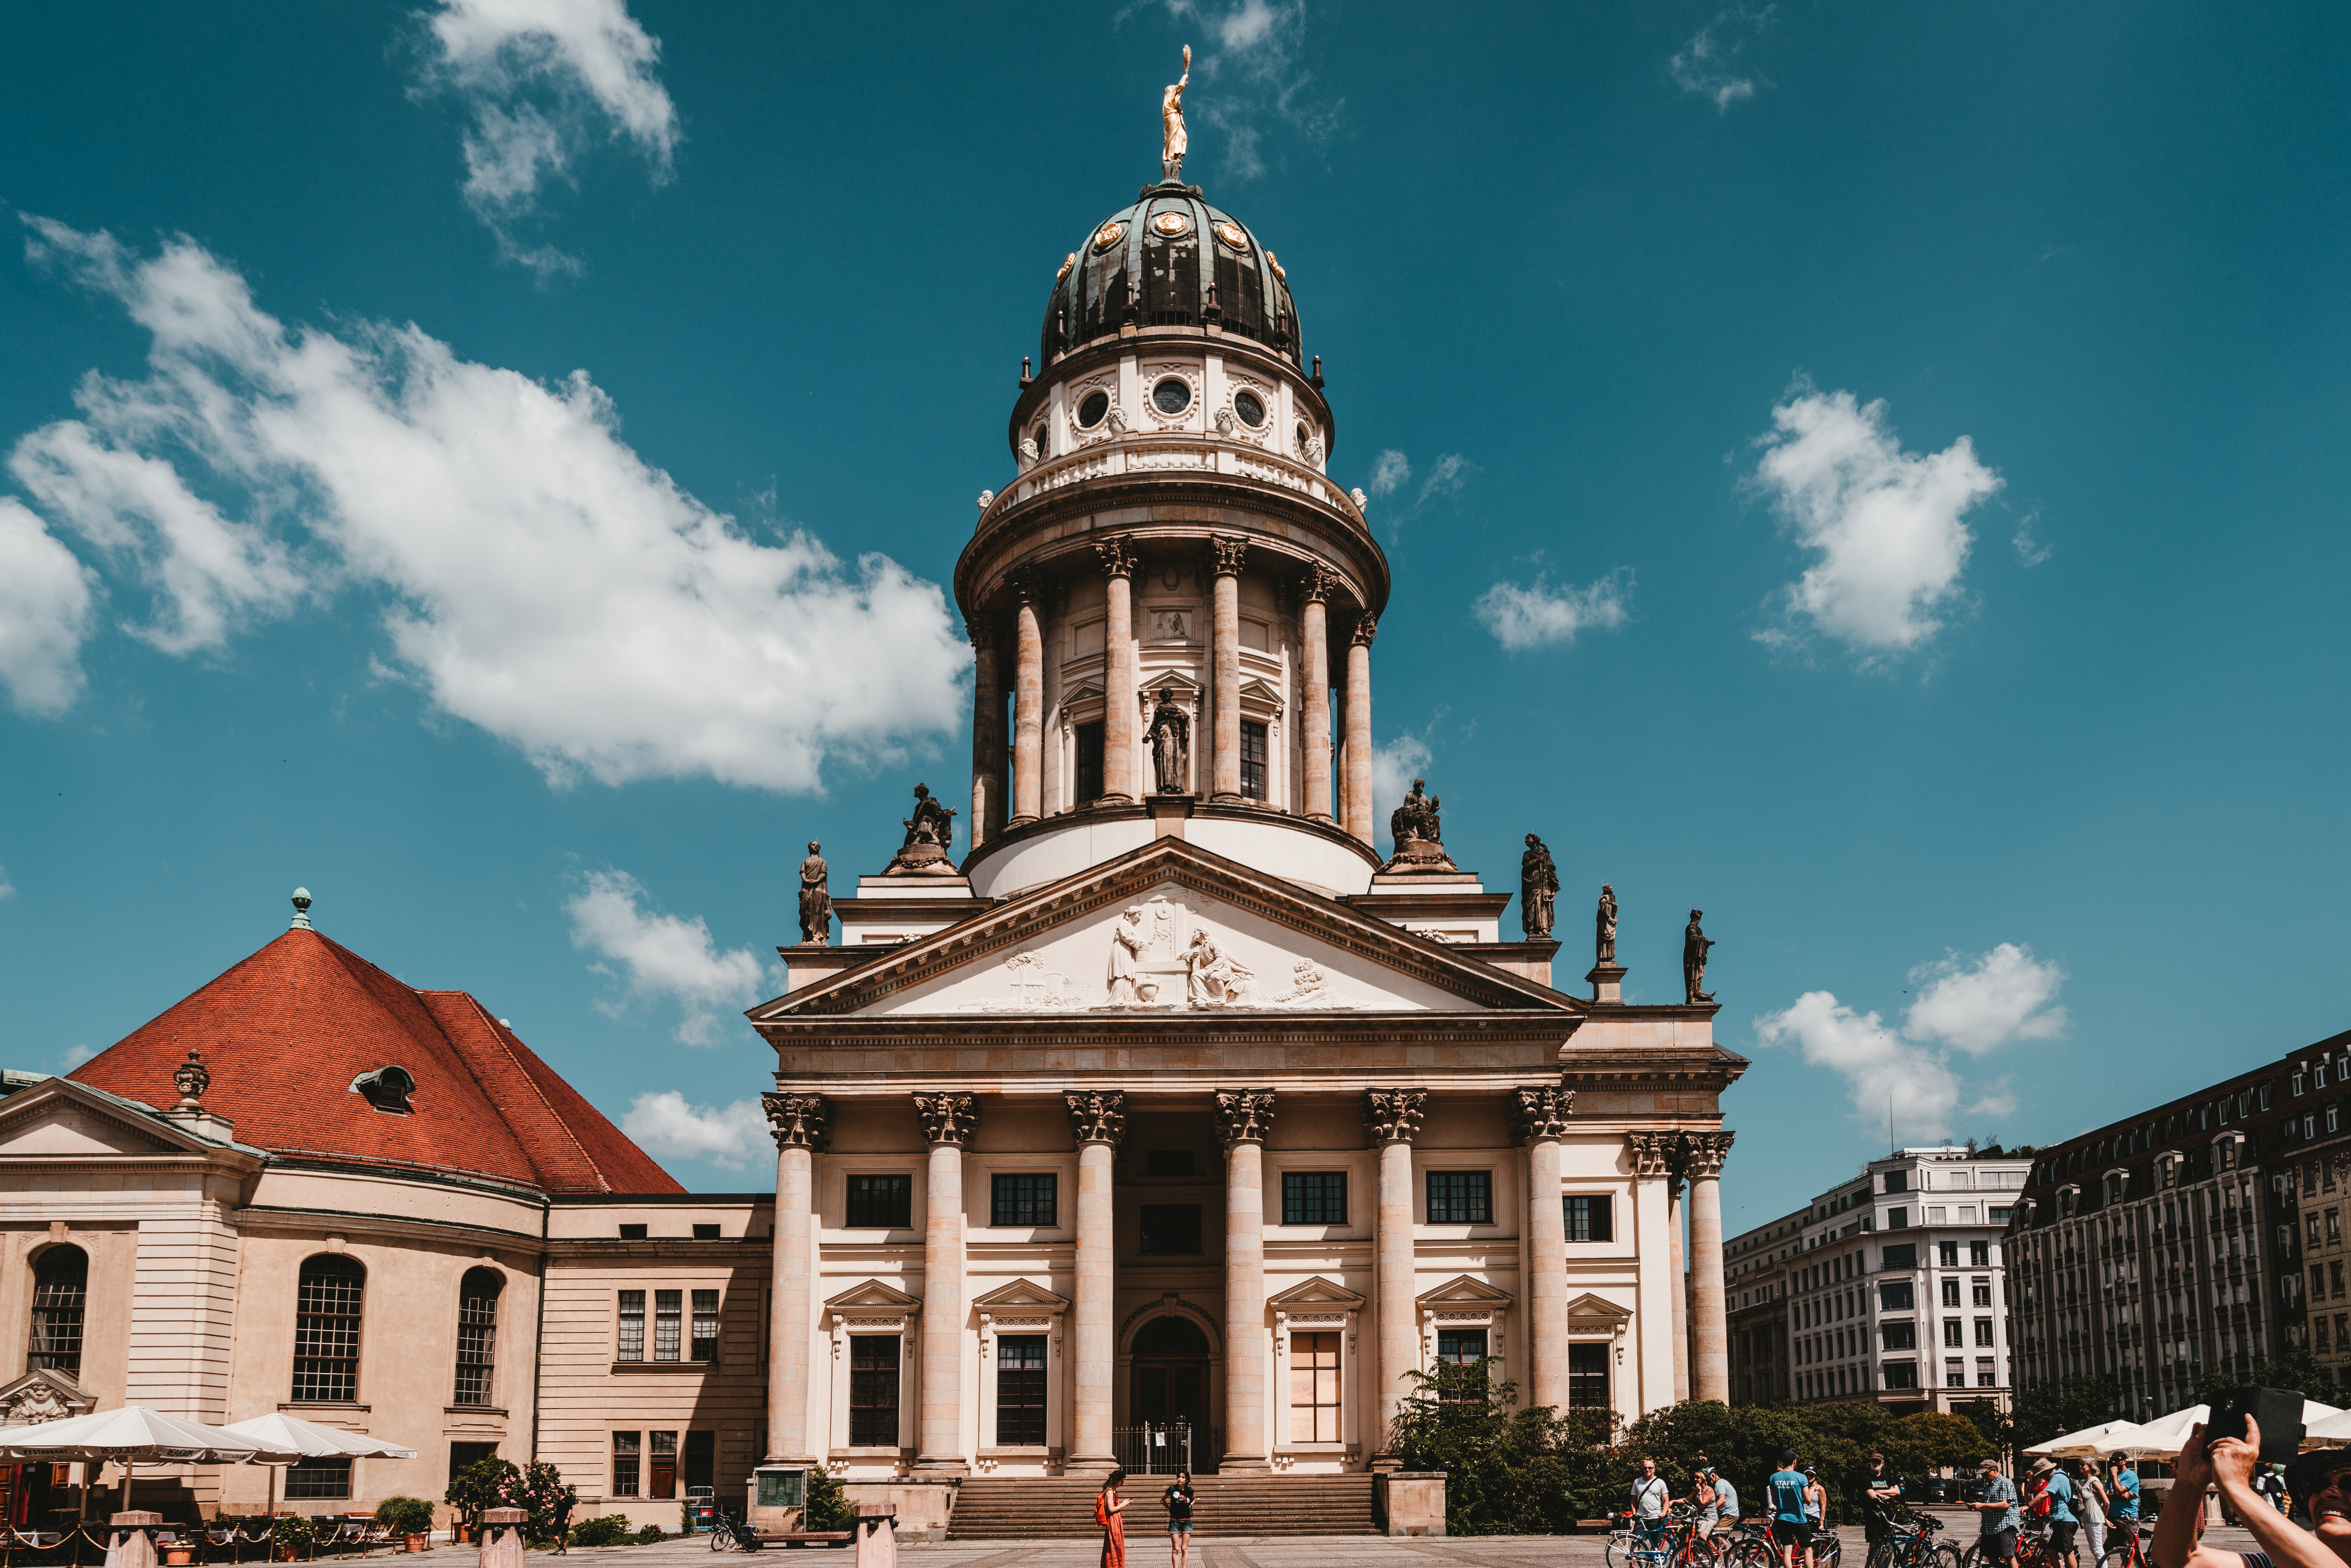 French Cathedral, Best Berlin Churches To Experience While In Germany